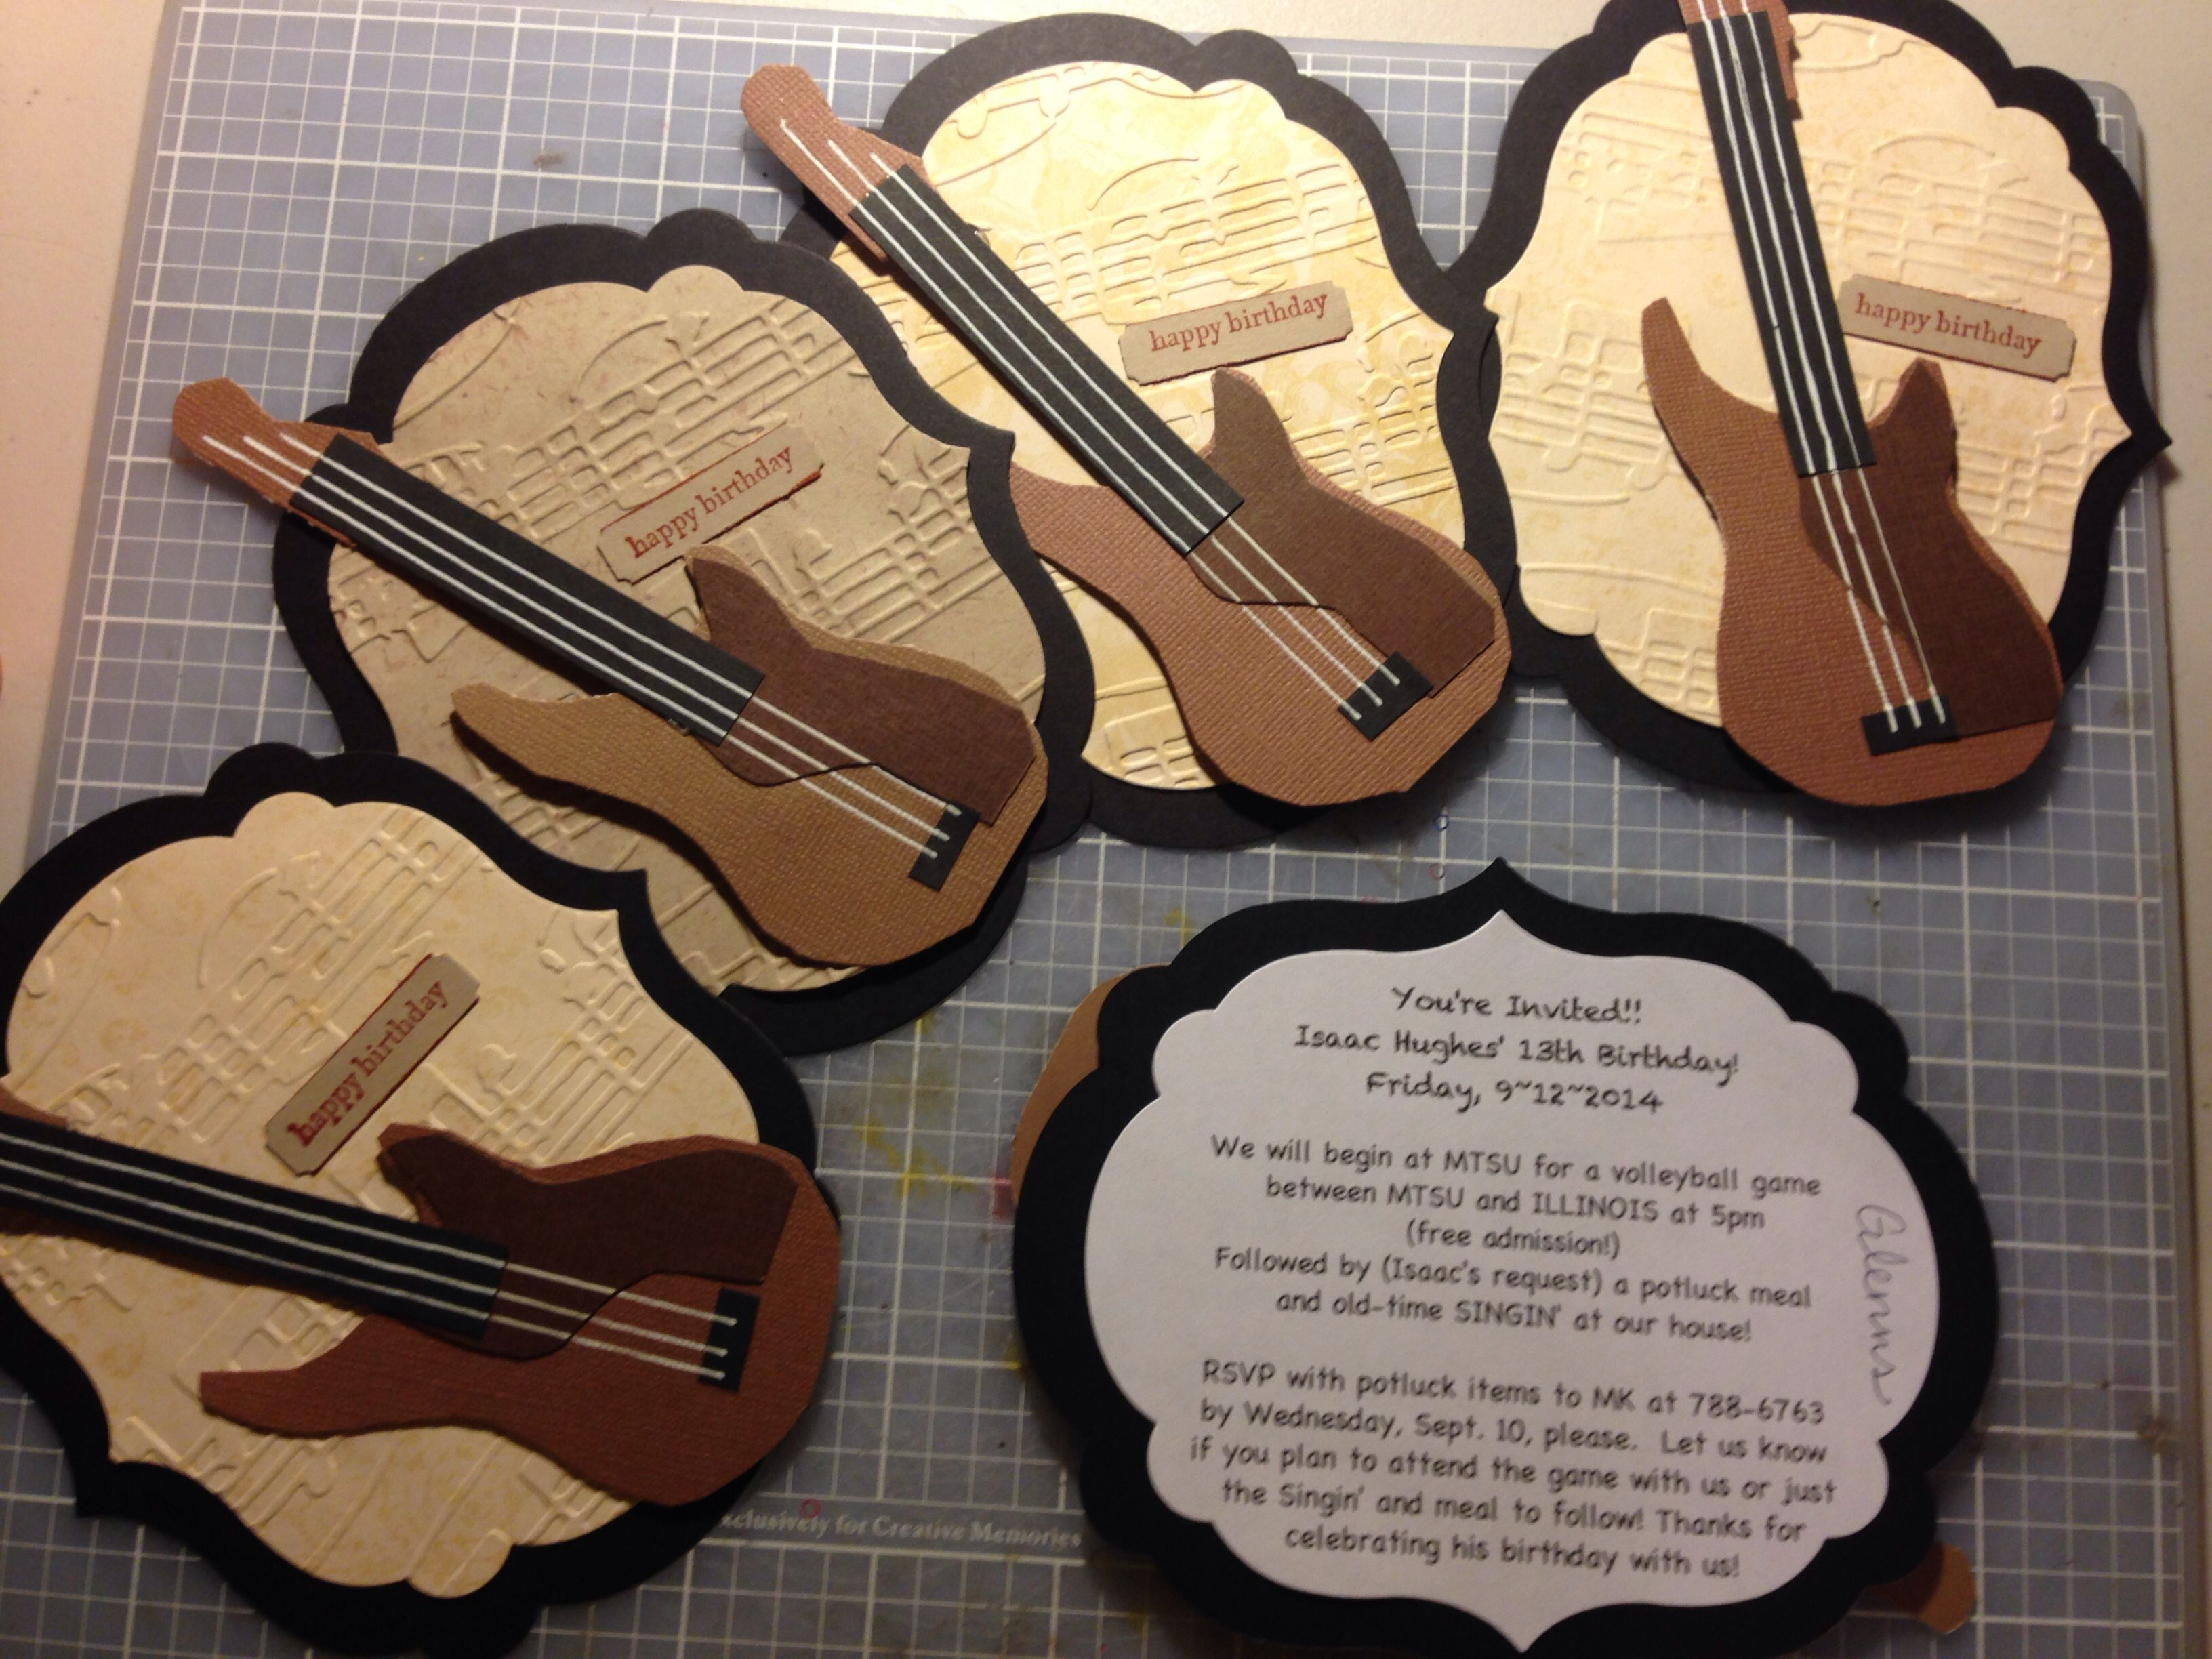 I made these birthday invites for my sons birthday this year. He's become quite an awesome bass player.